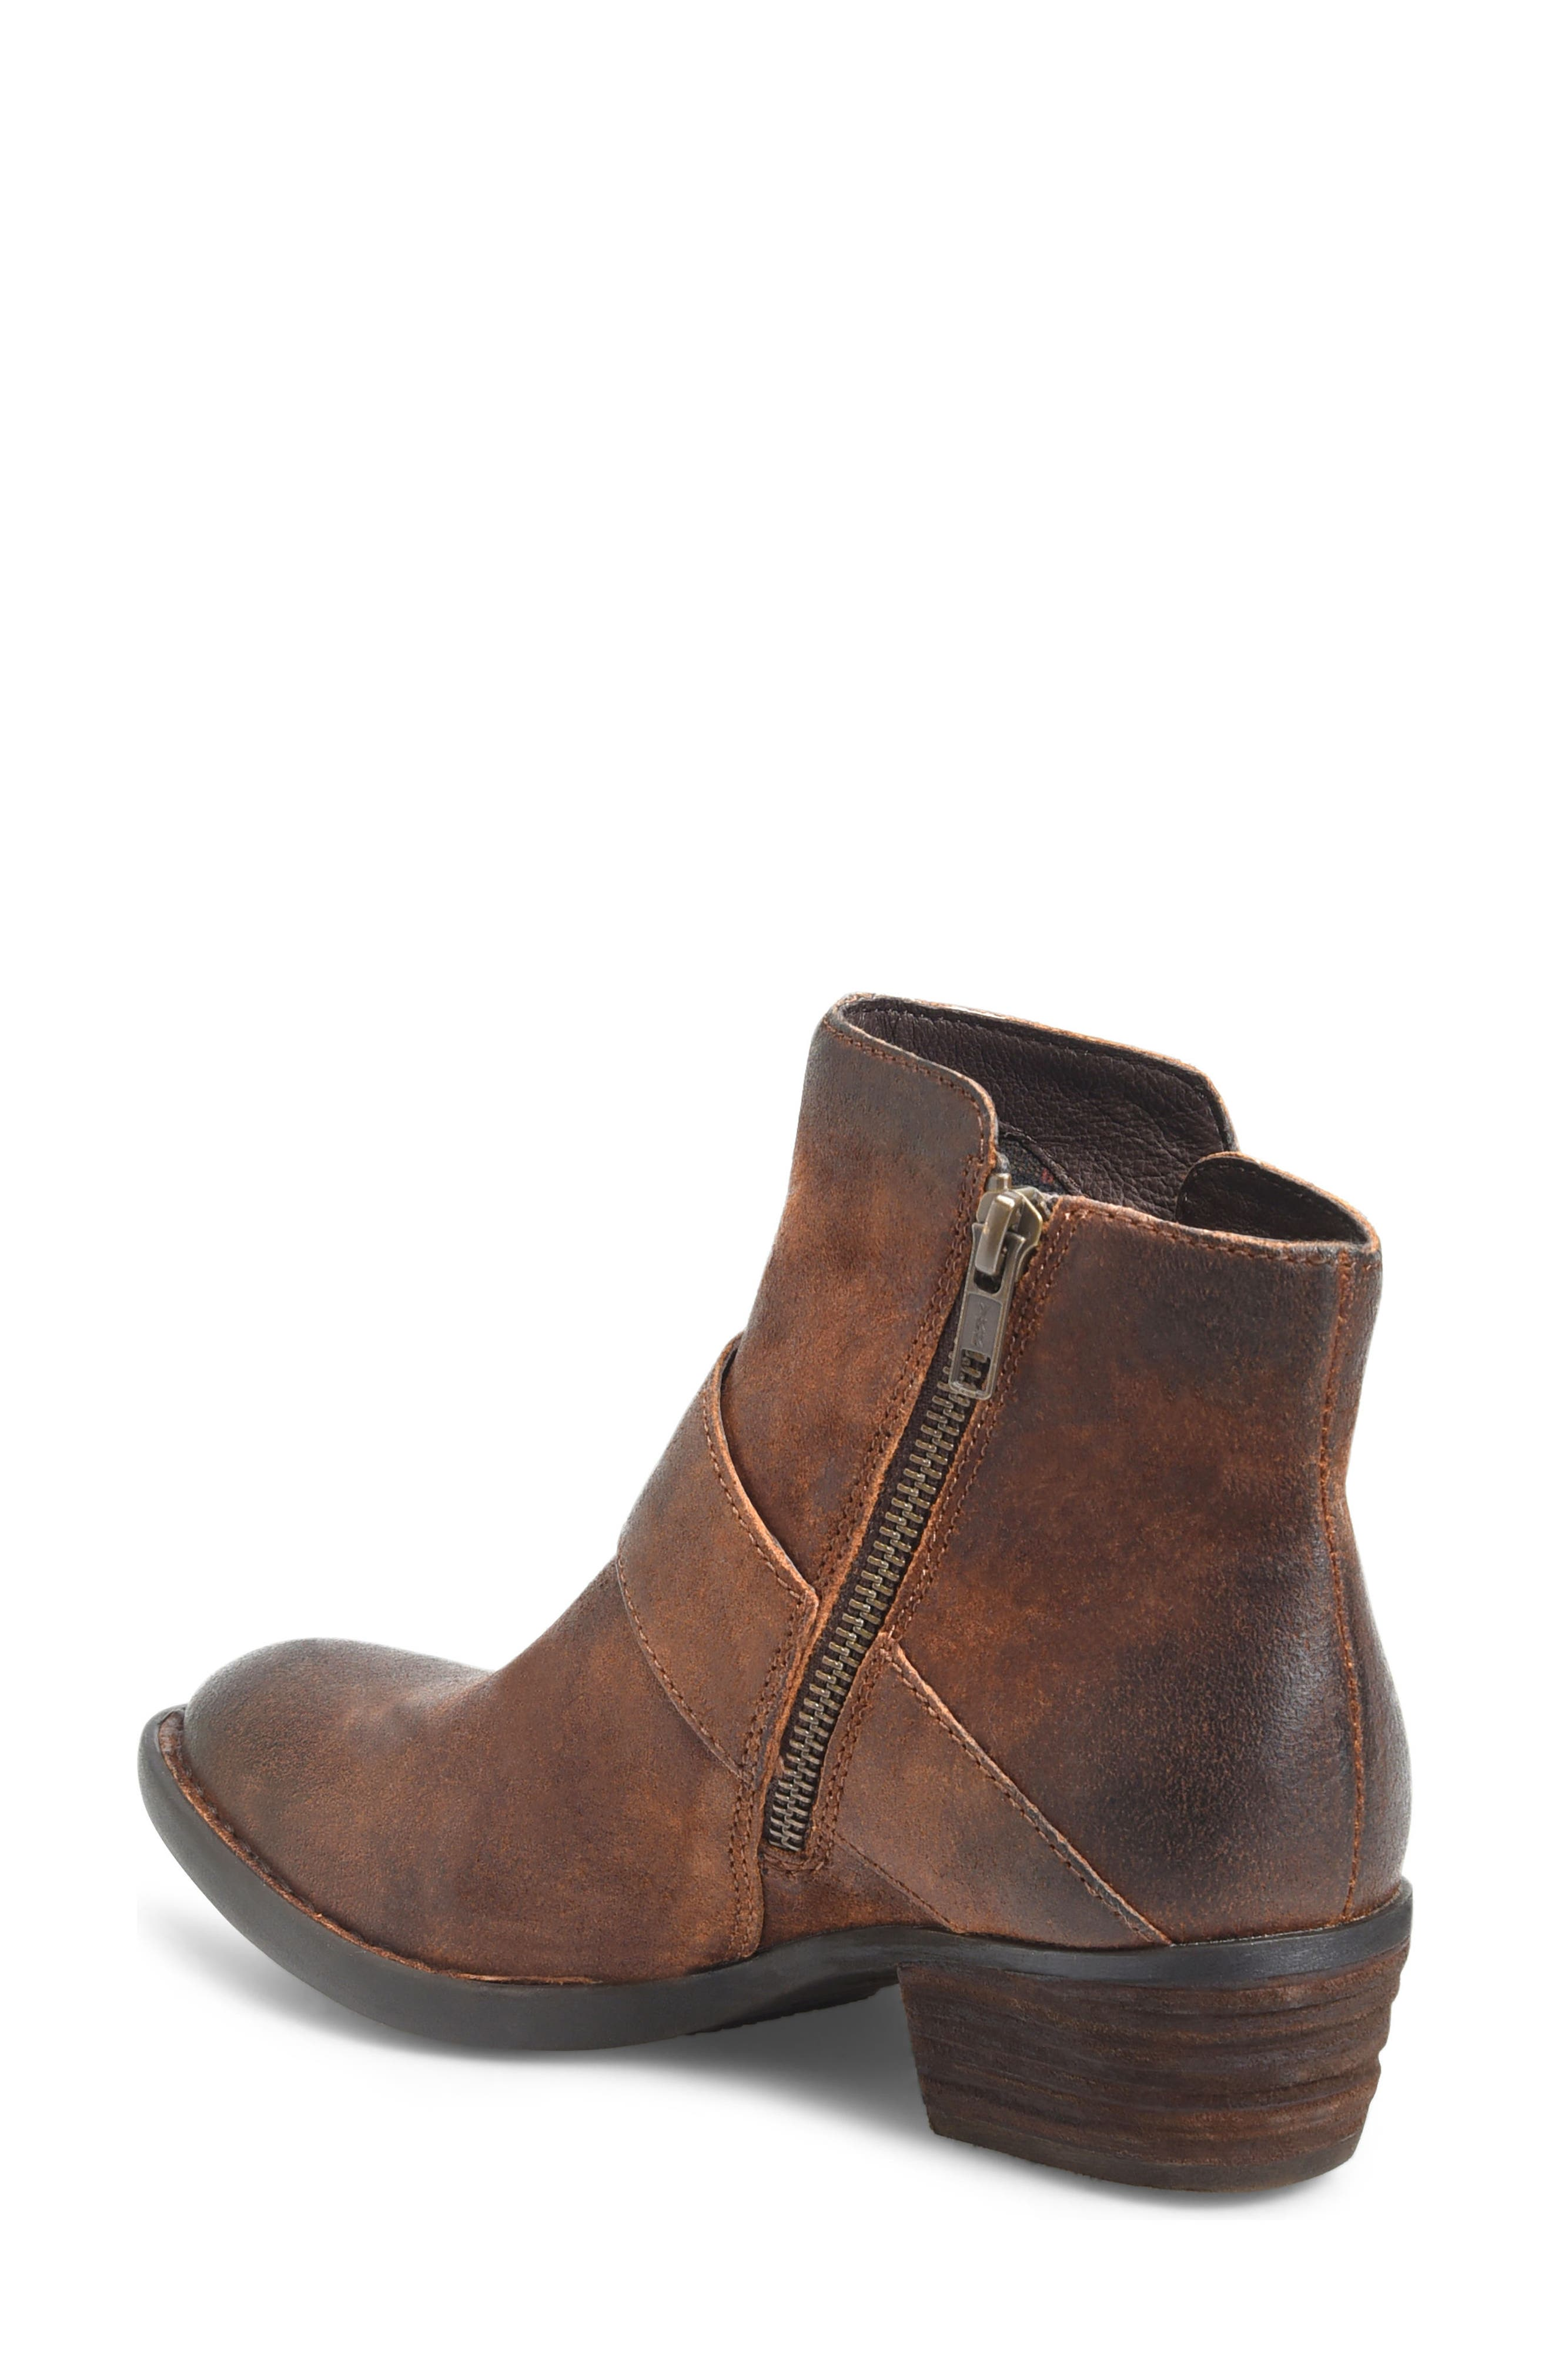 Baloy Bootie,                             Alternate thumbnail 2, color,                             Rust Suede